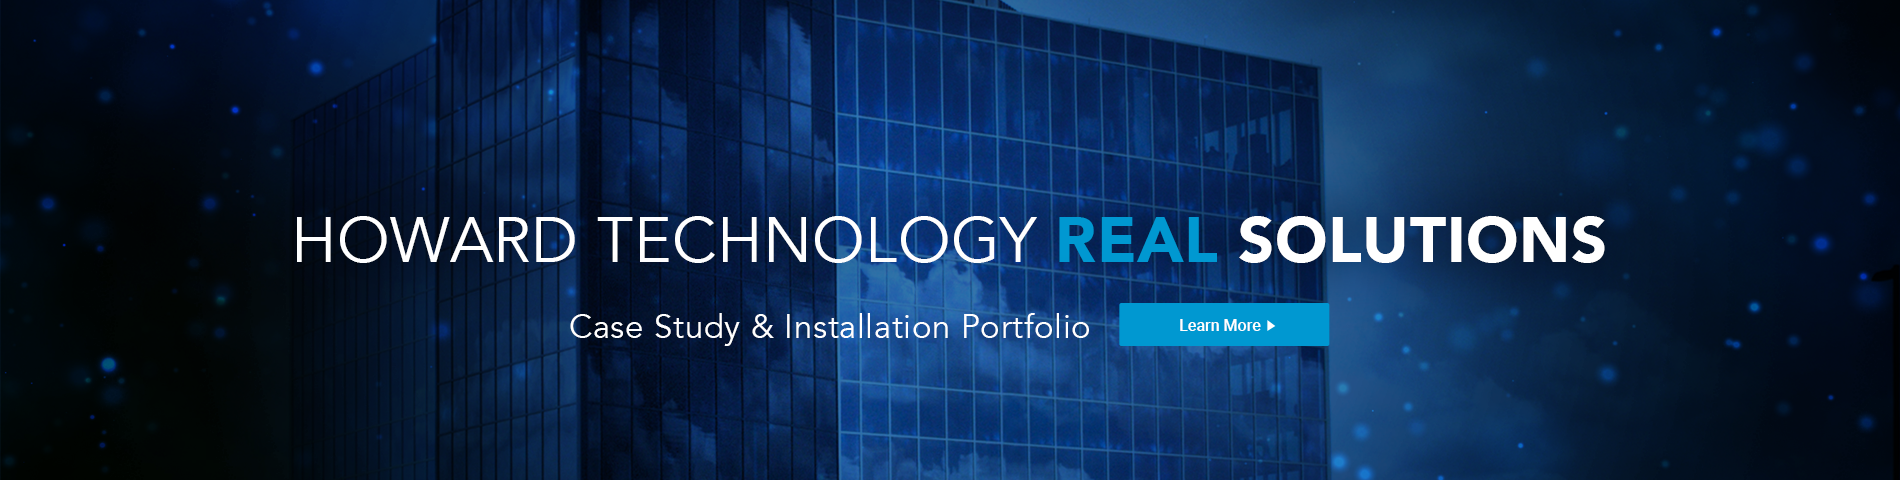 Howard Technology Solutions Case Study and Installation Portfolio